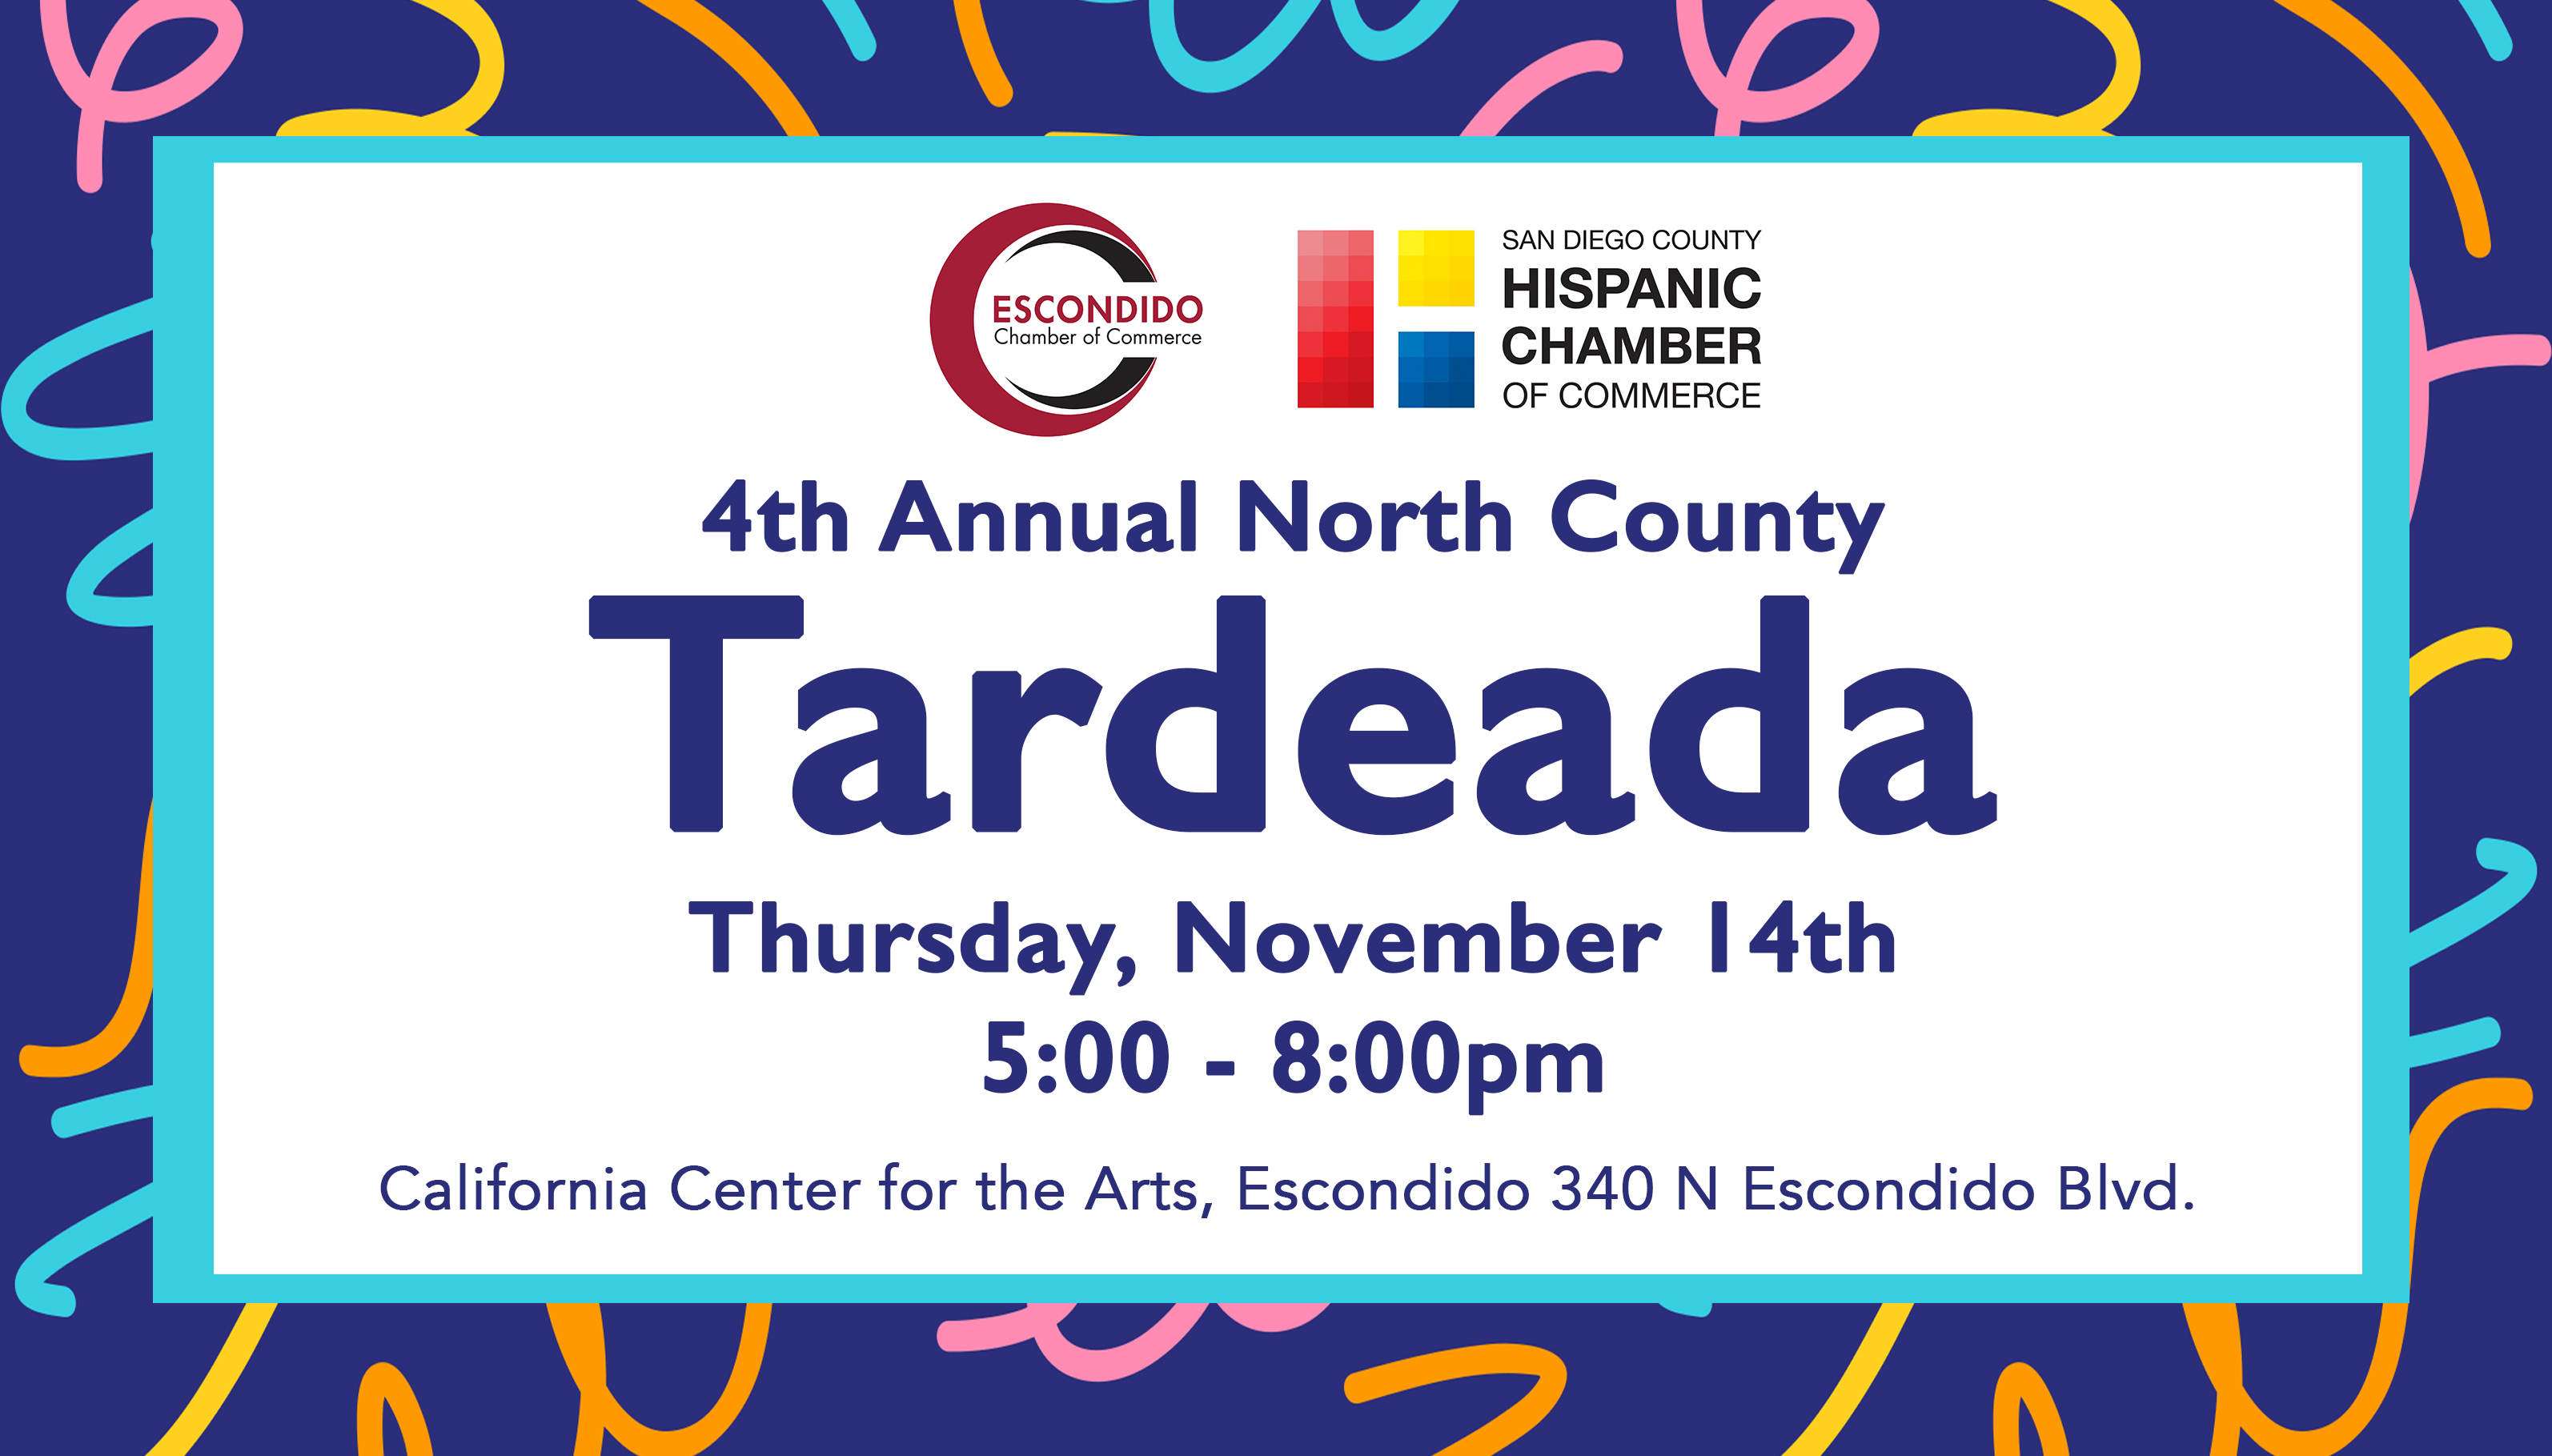 San Diego County Hispanic Chamber North County Tardeada 2019